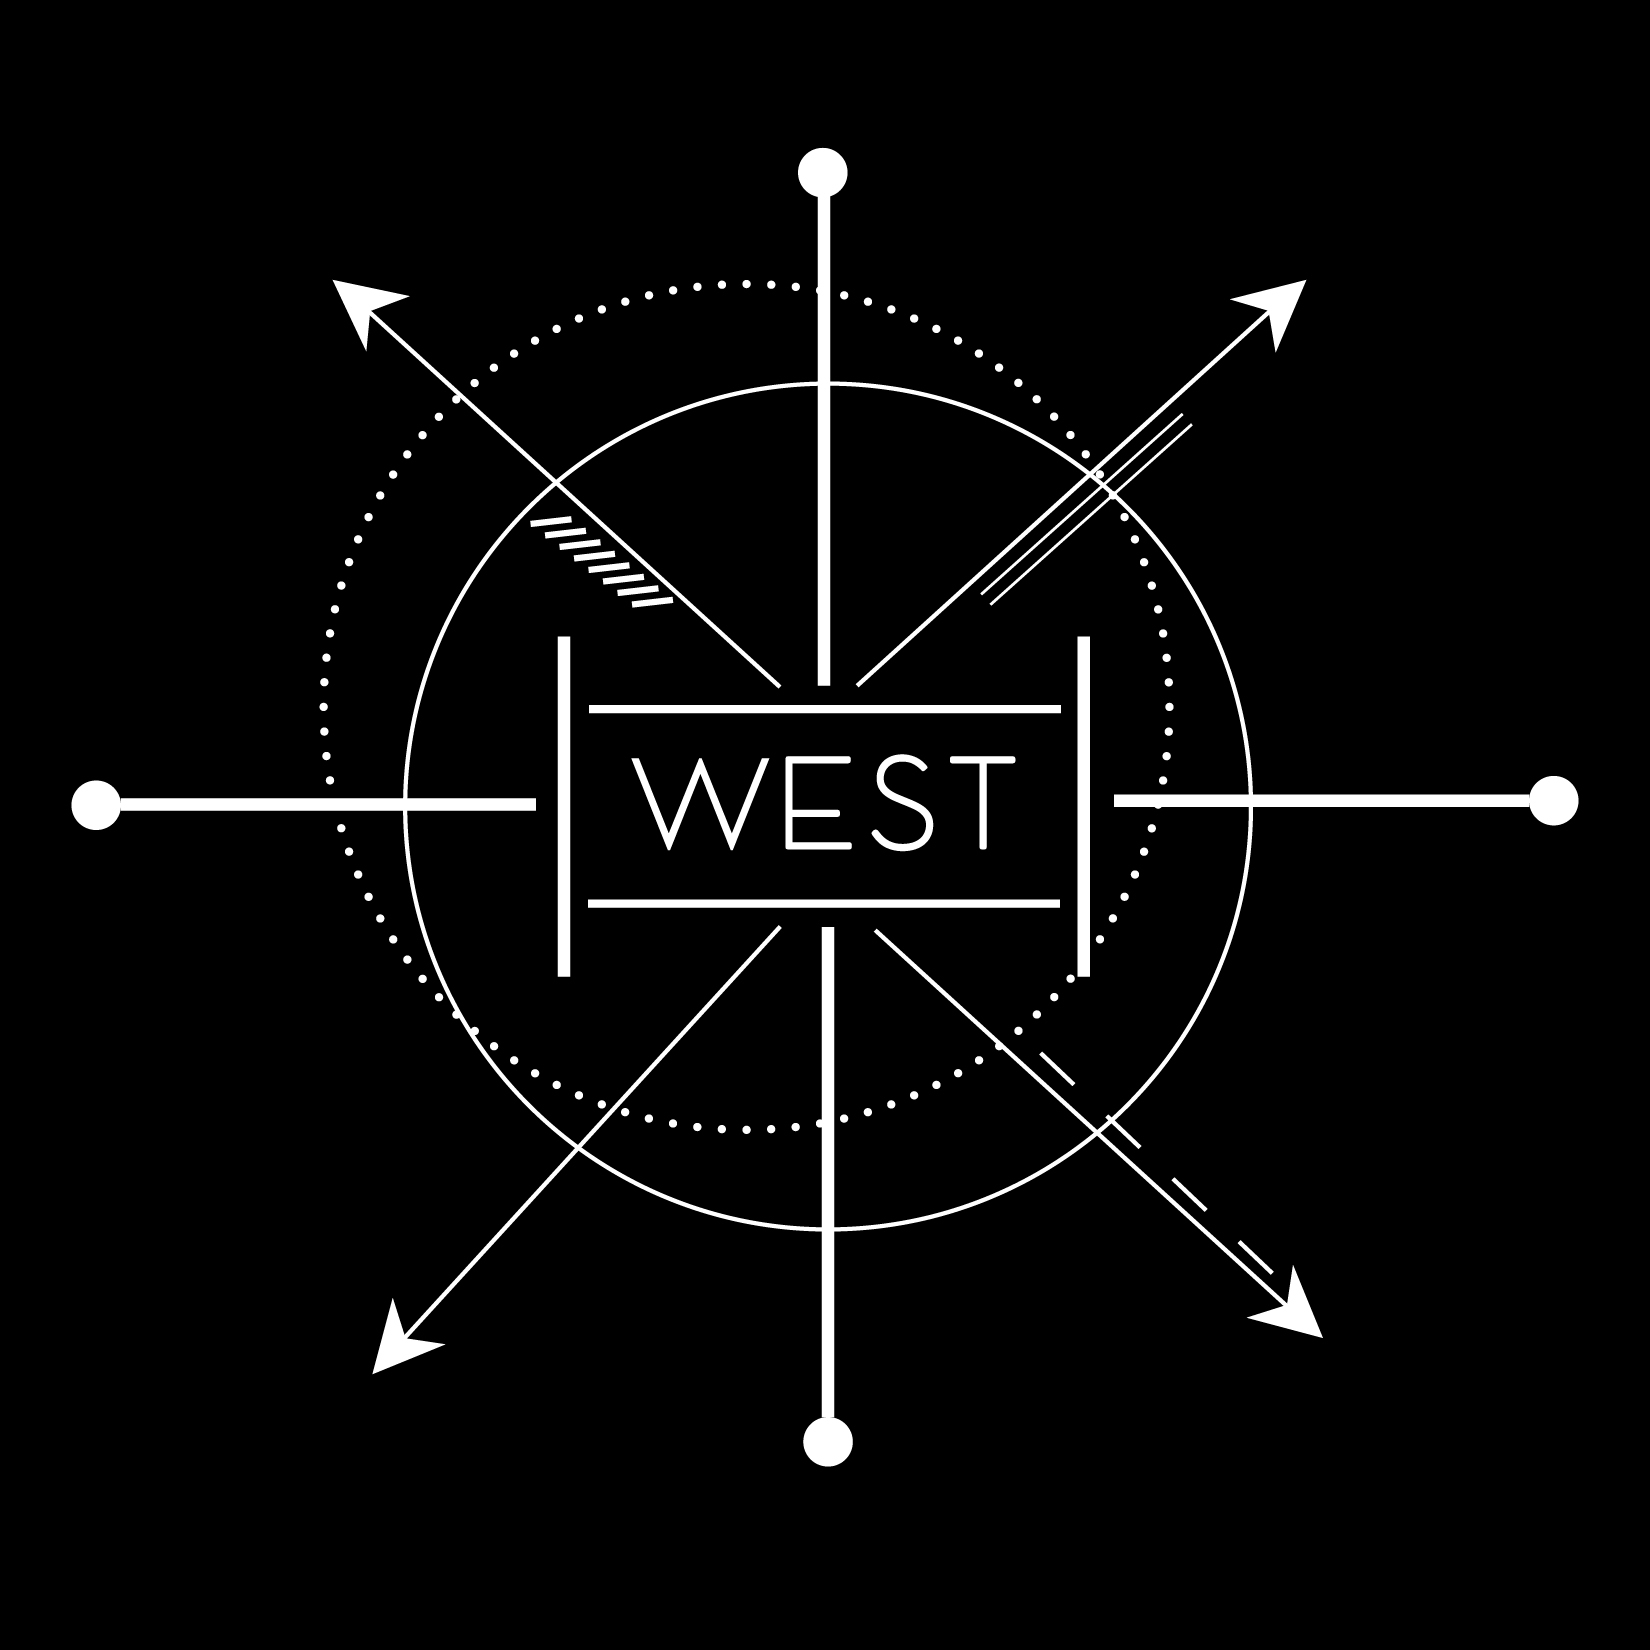 WEST LOGO - blk.jpg